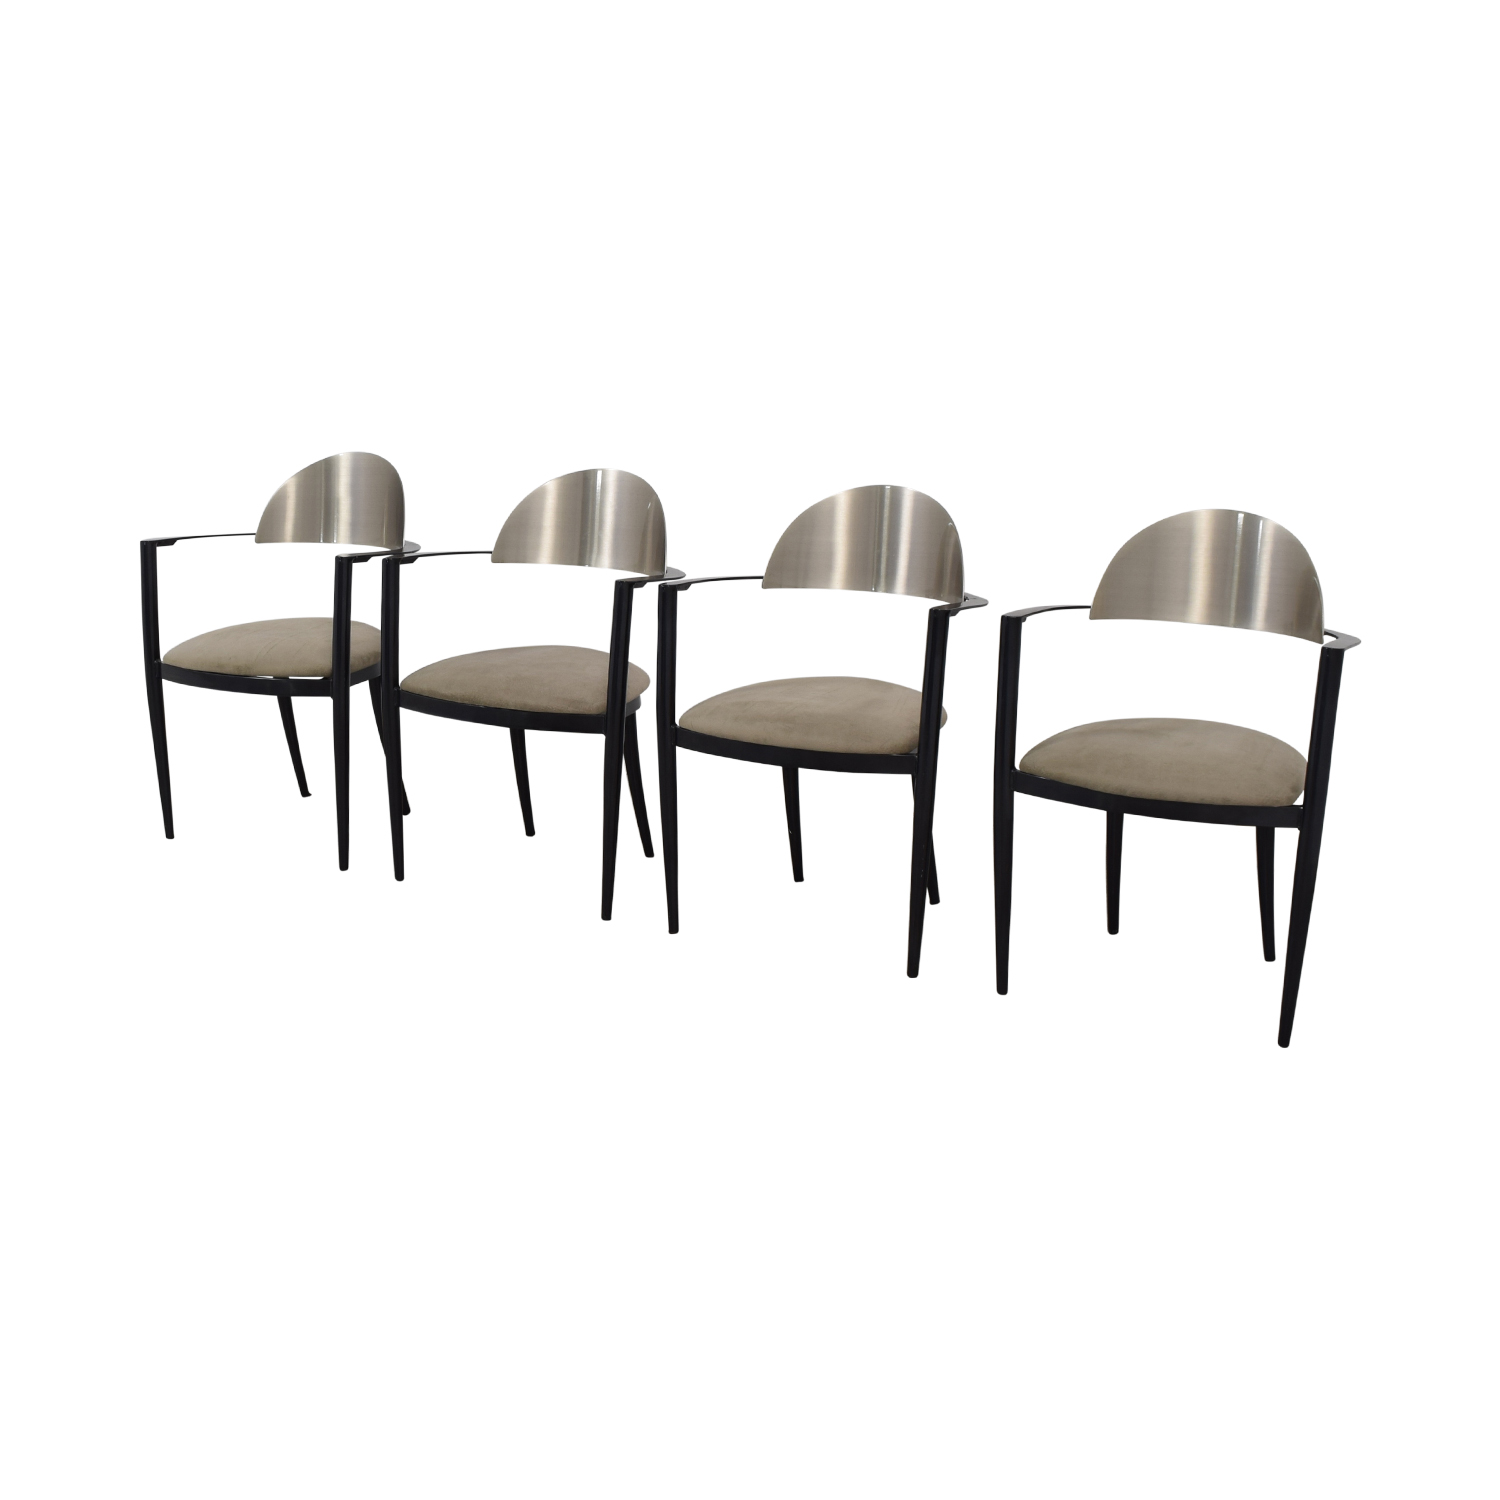 Chrome and Beige Upholstered Dining Chairs sale